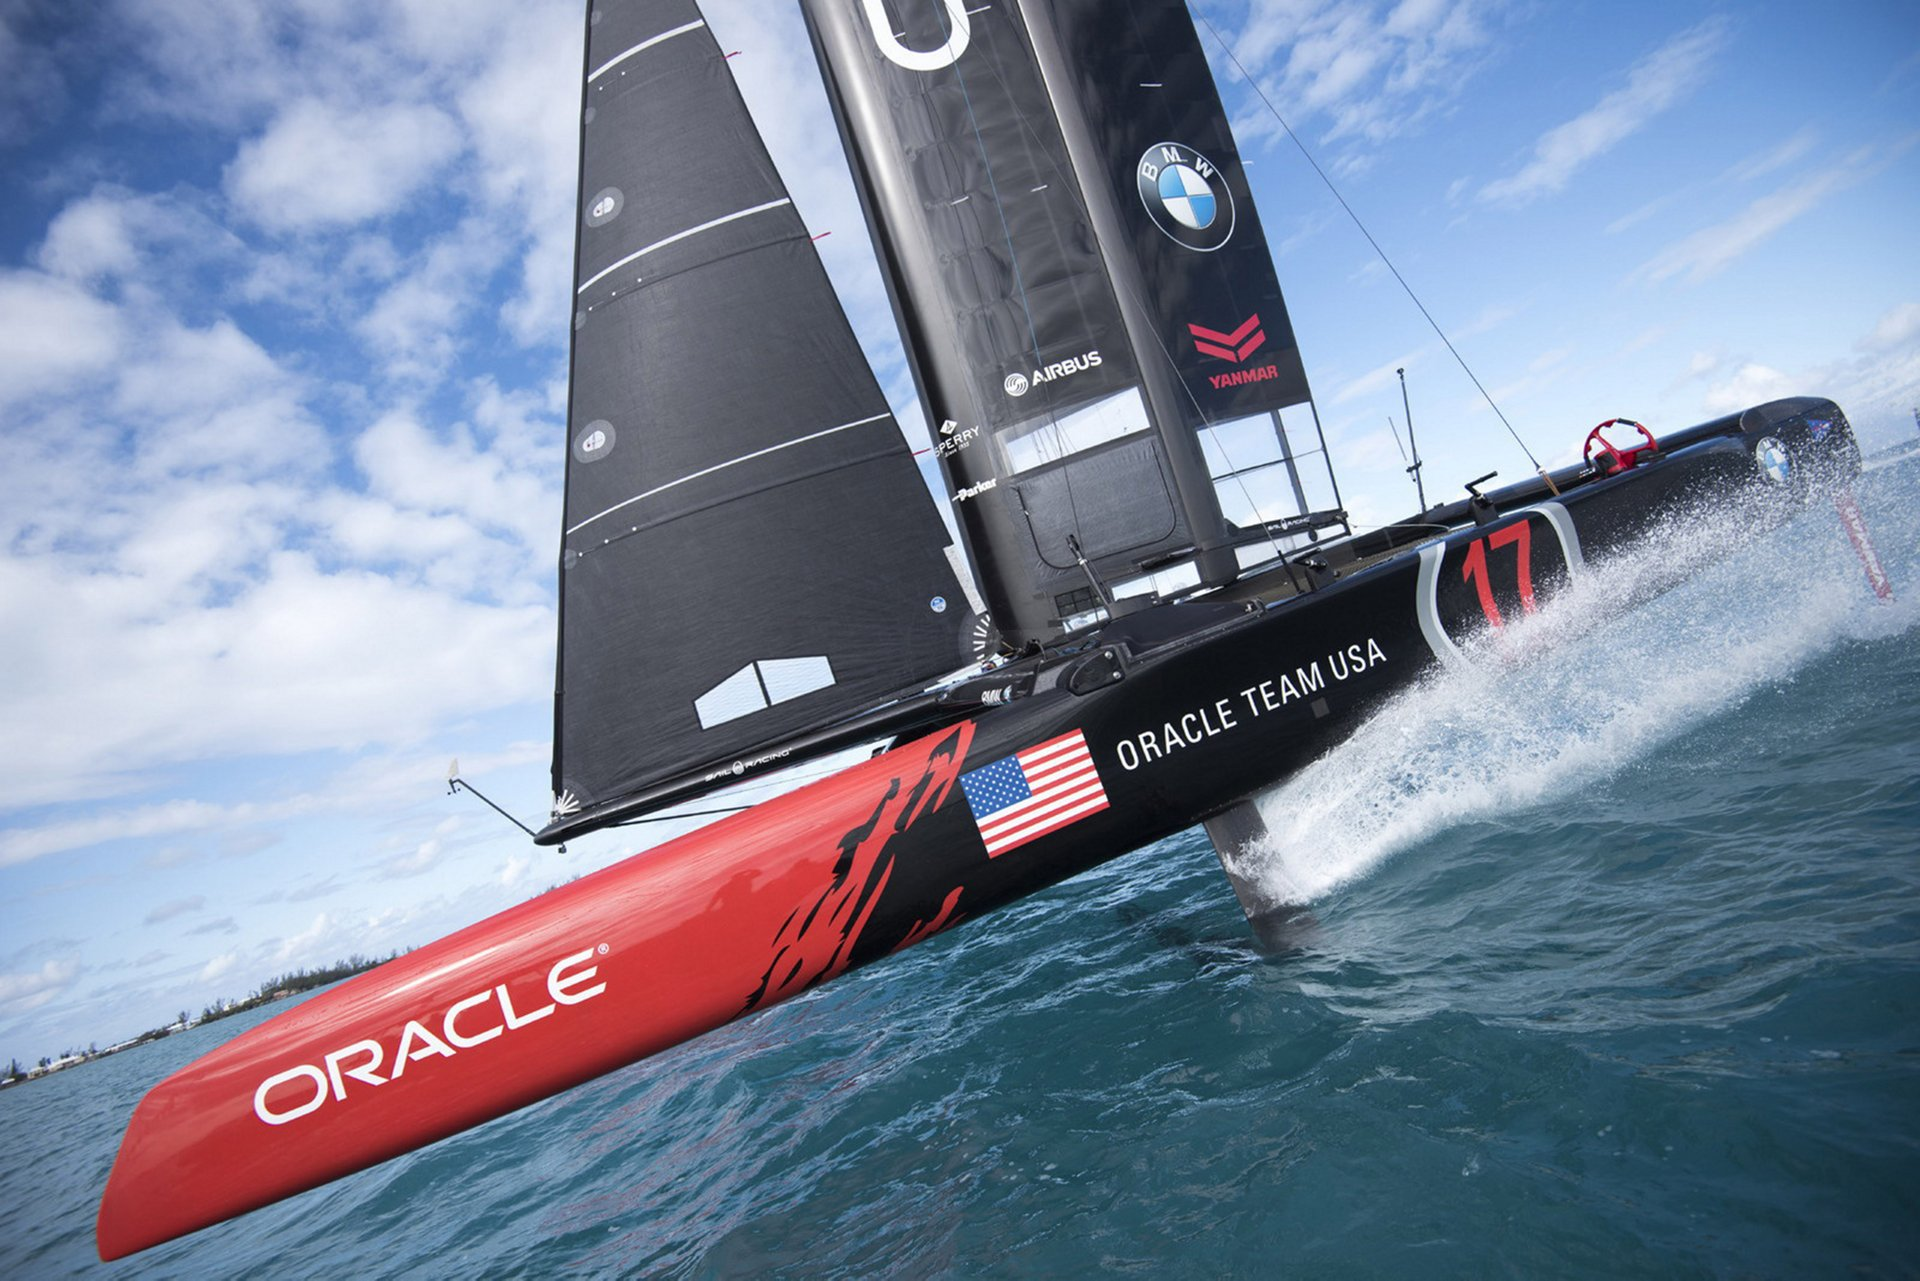 ORACLE TEAM USA_AC Class yacht